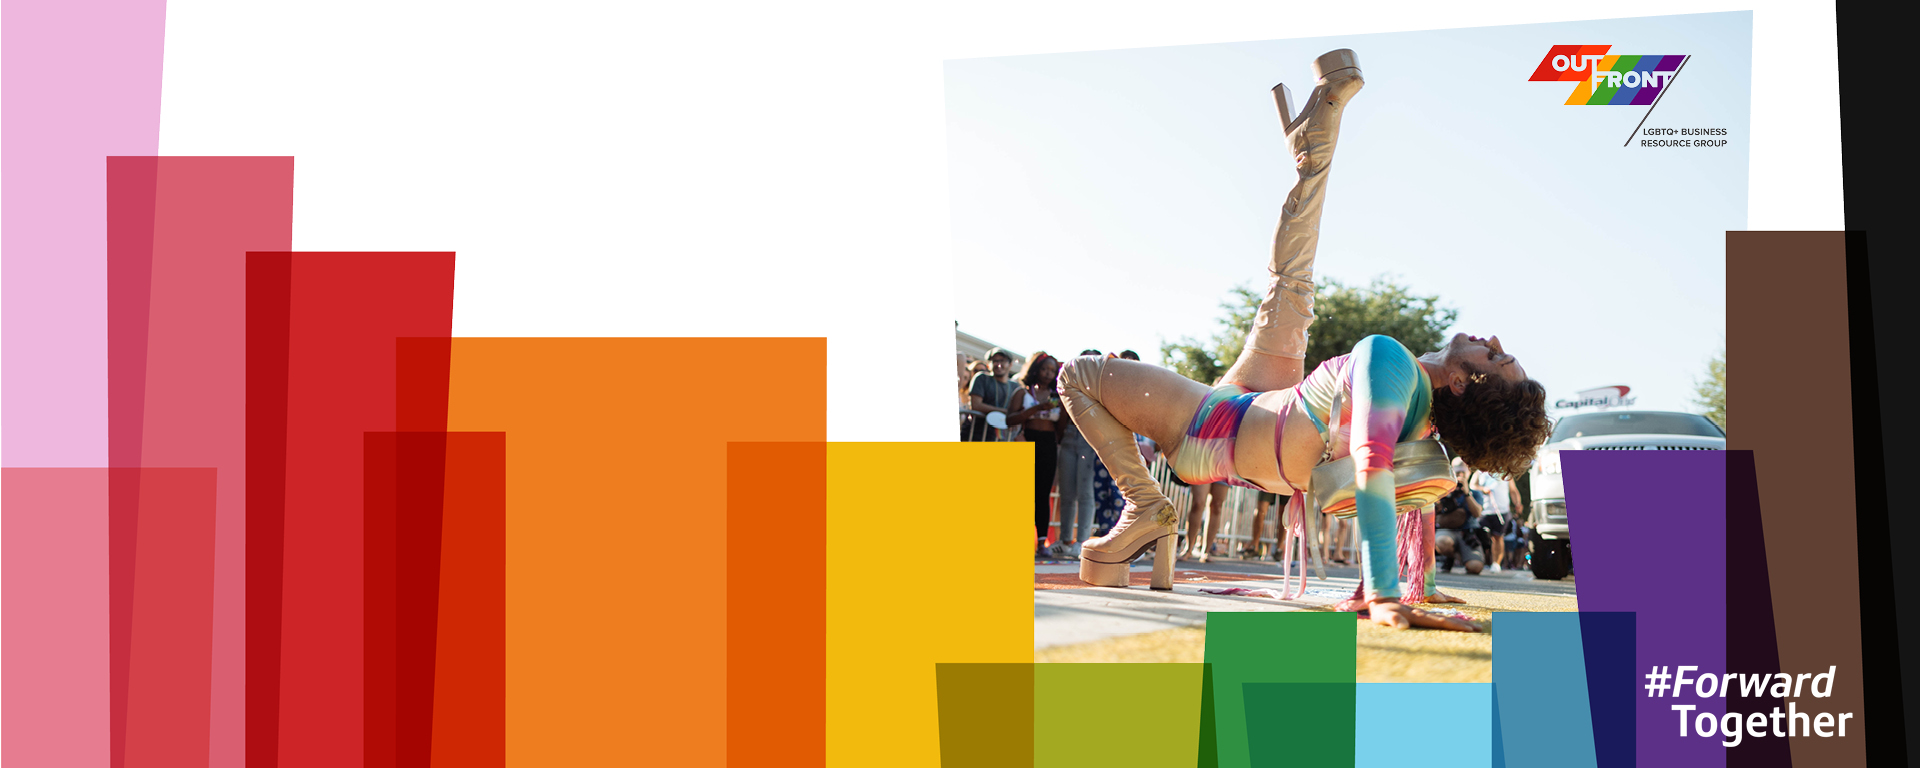 Colorful Pride month design treatment on an image of a Capital One associate showing off their dance moves in heels celebrating Pride month